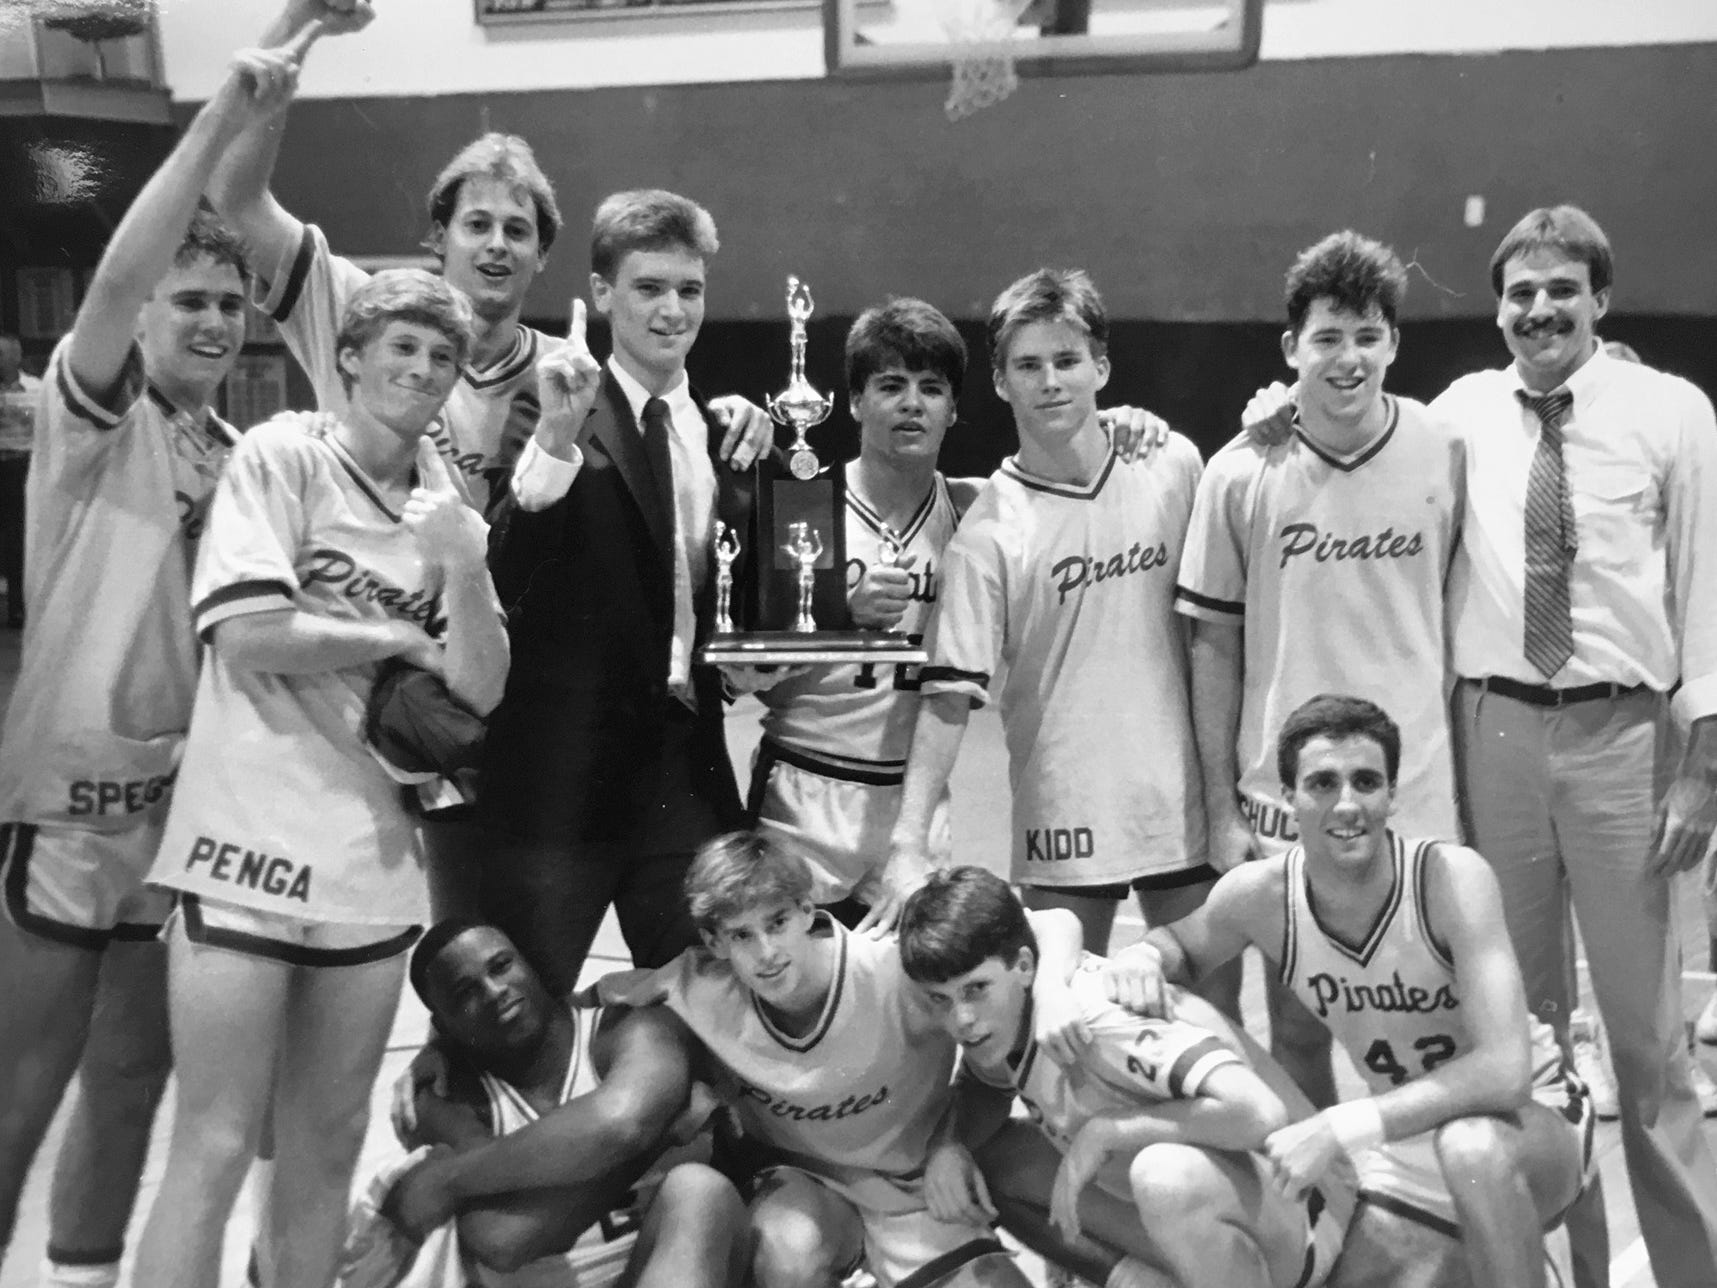 The St. Edward's boys basketball team coached by Ed Kohtala (right) celebrates their 1987 district title win over King's Academy from West Palm Beach. King's Academy was the 10-year reigning district champions until that year. Kohtala began his coaching career in the 1984-85 season as the head basketball coach and teacher at St. Edward's Upper School in Vero Beach, and stayed there for four seasons.